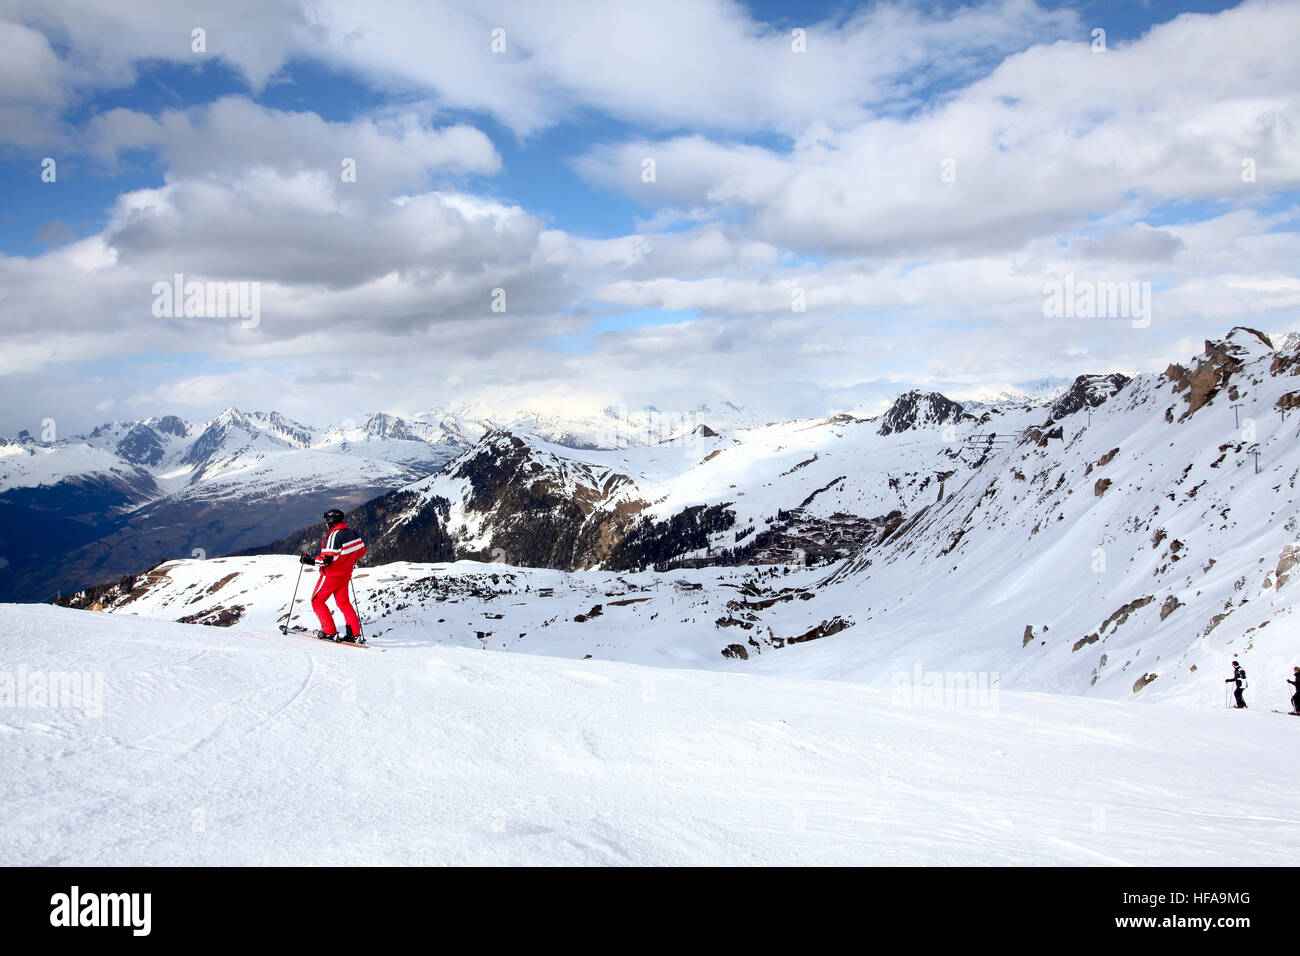 Les Arcs is a ski resort located in Savoie, France, in the Tarentaise Valley town of Bourg-Saint-Maurice. - Stock Image